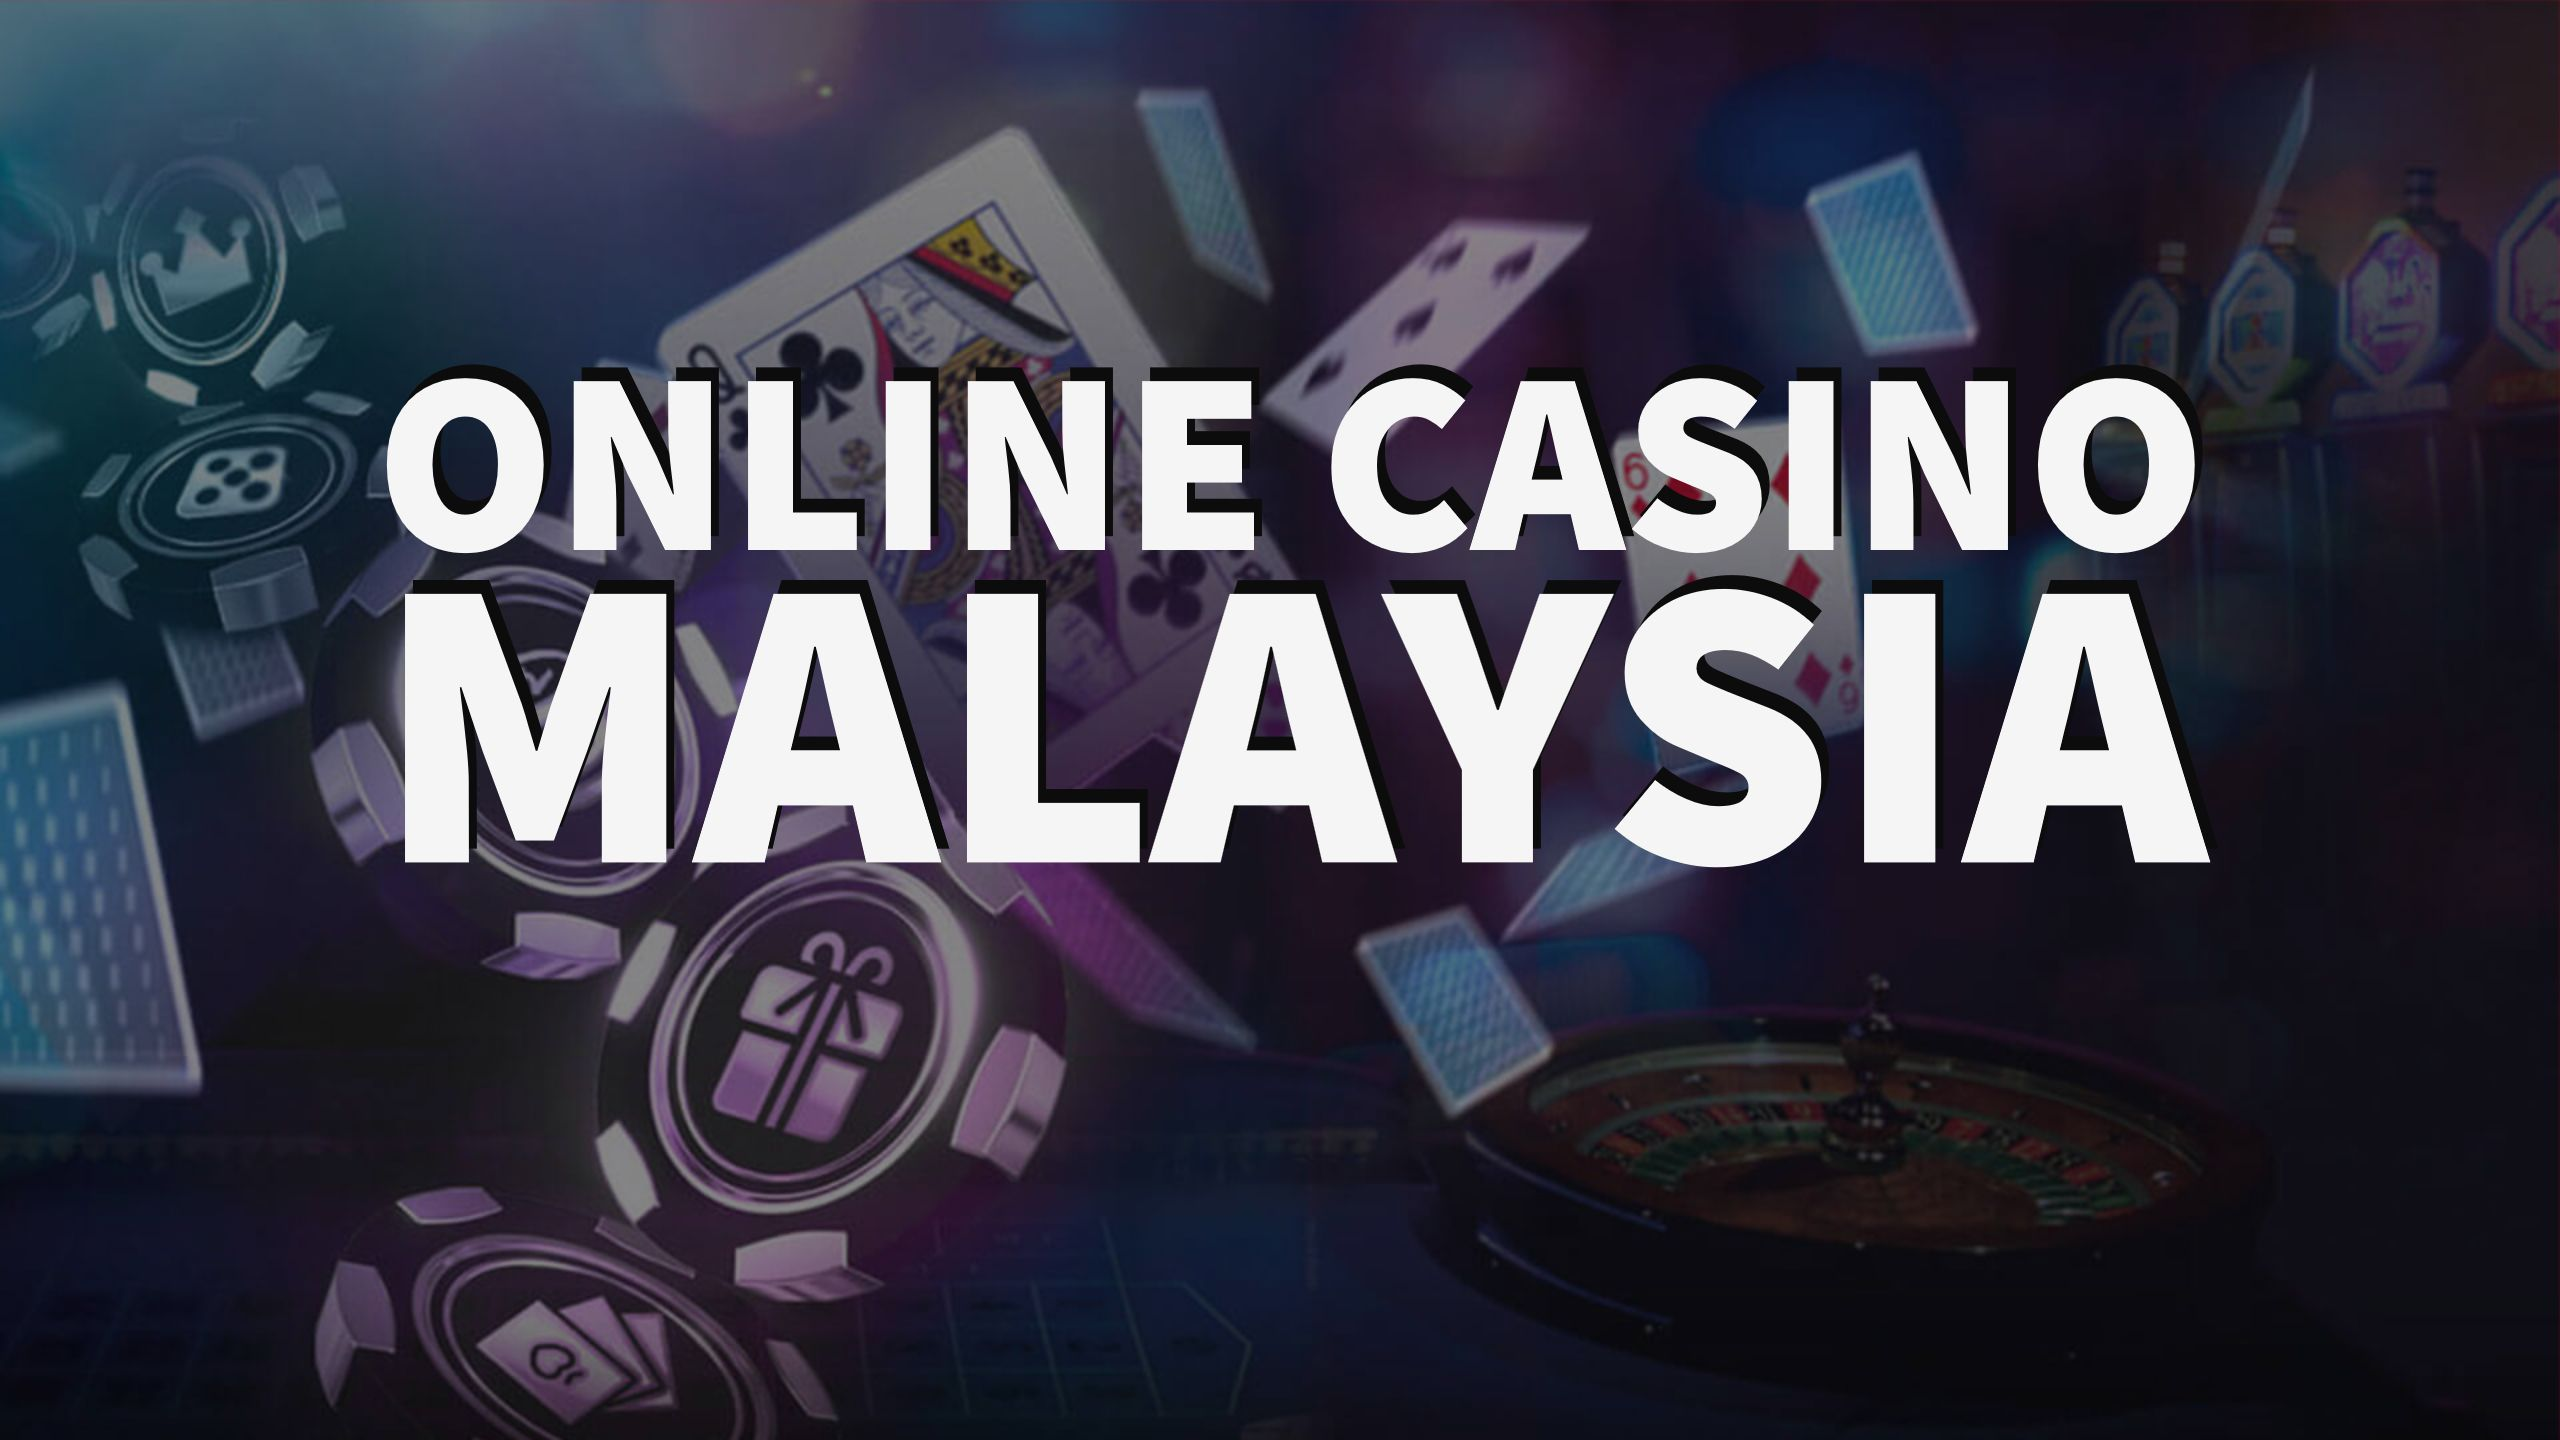 On line   casino Malaysia: Very easy to play as well as simpler to discover the game